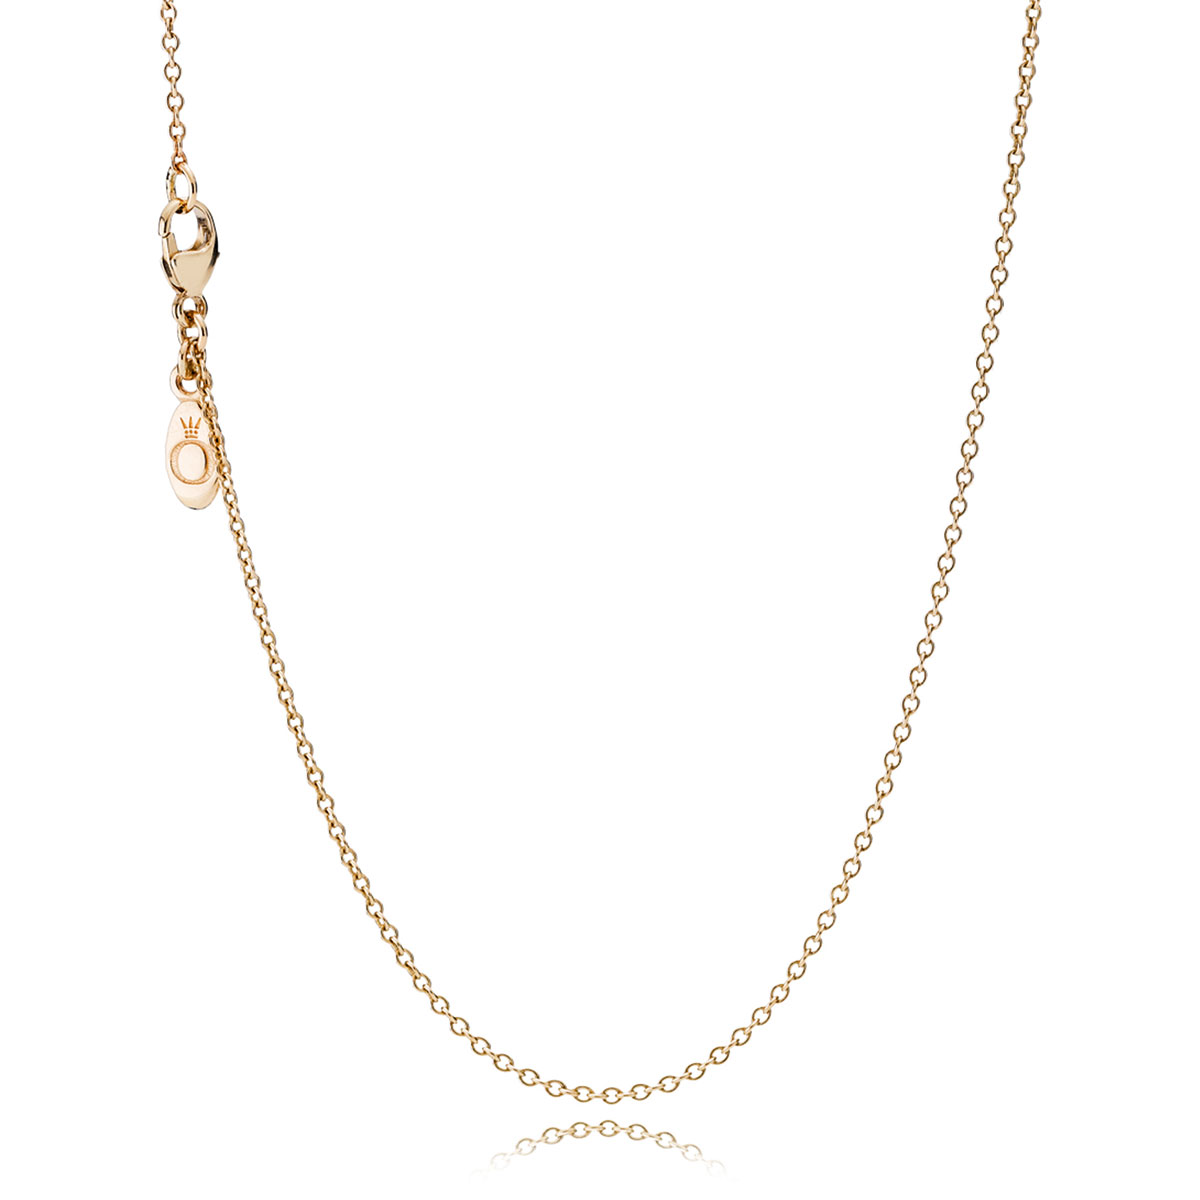 801-705-PANDORA 14K Necklace Chain